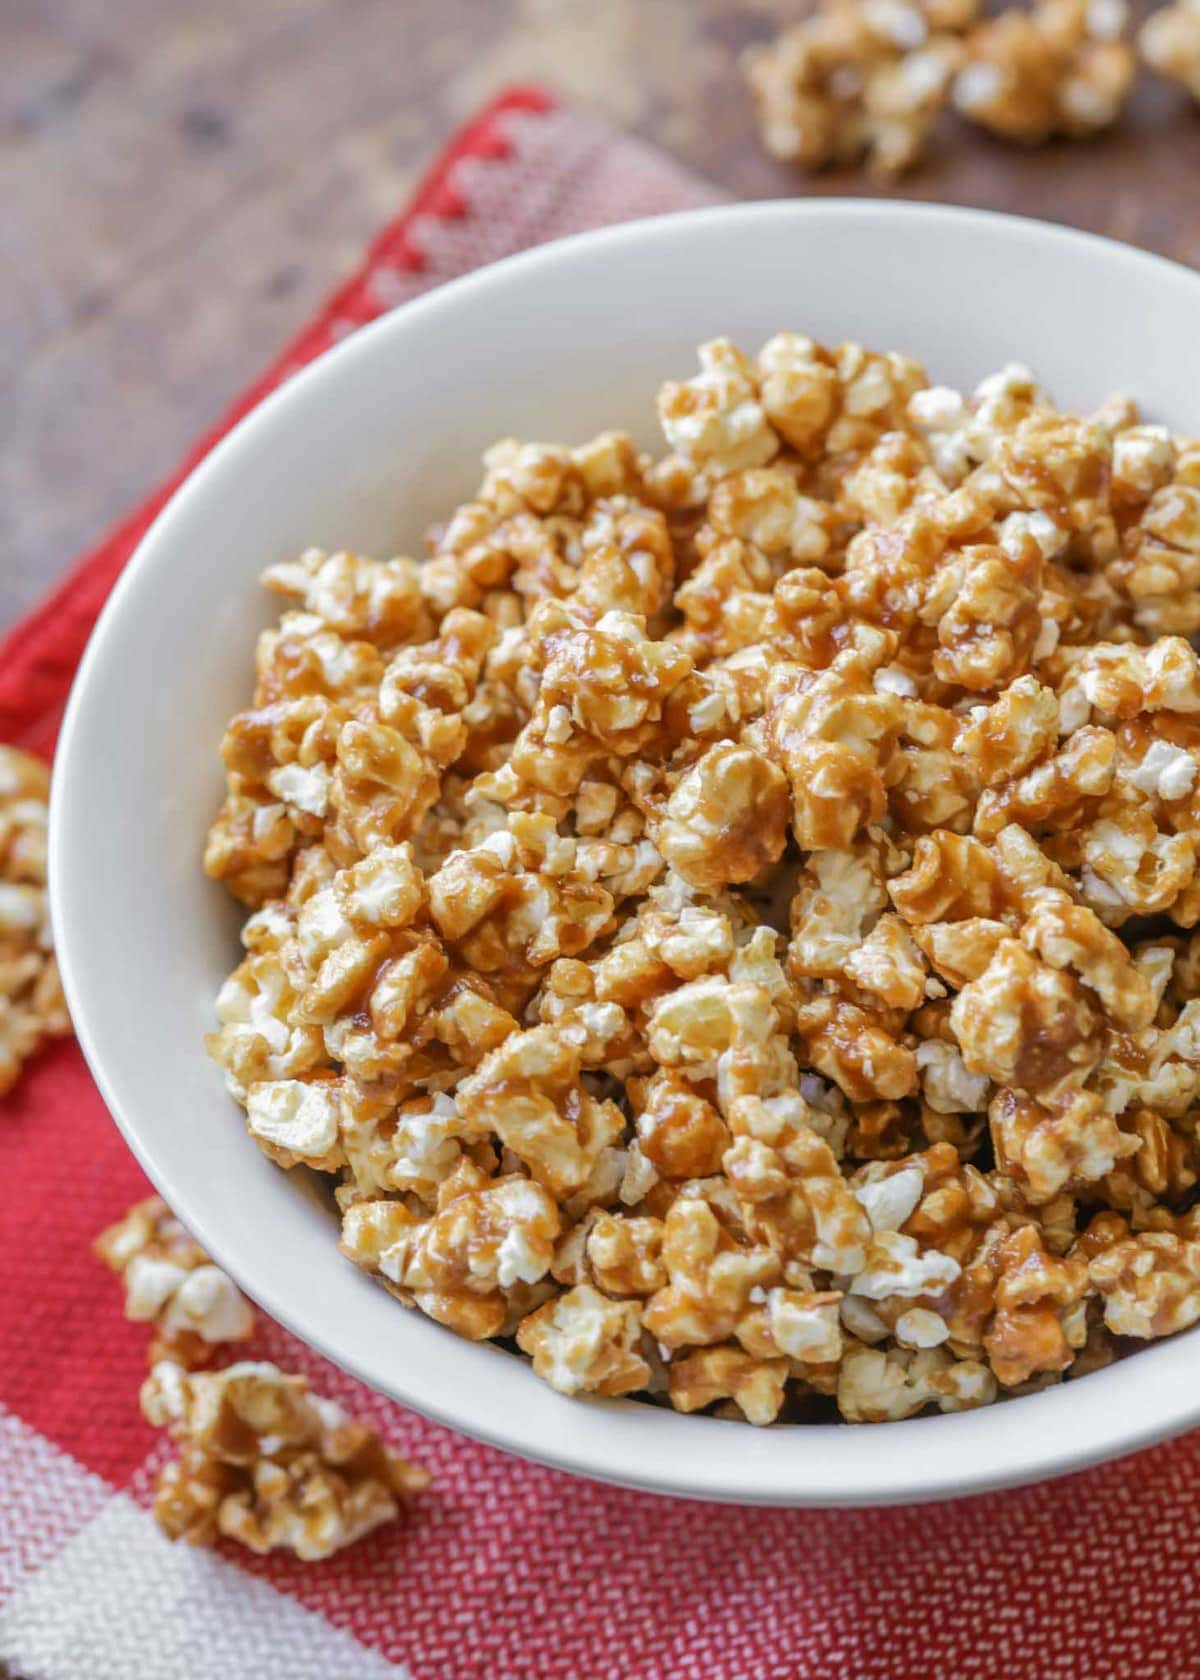 Homemade caramel corn in a white bowl